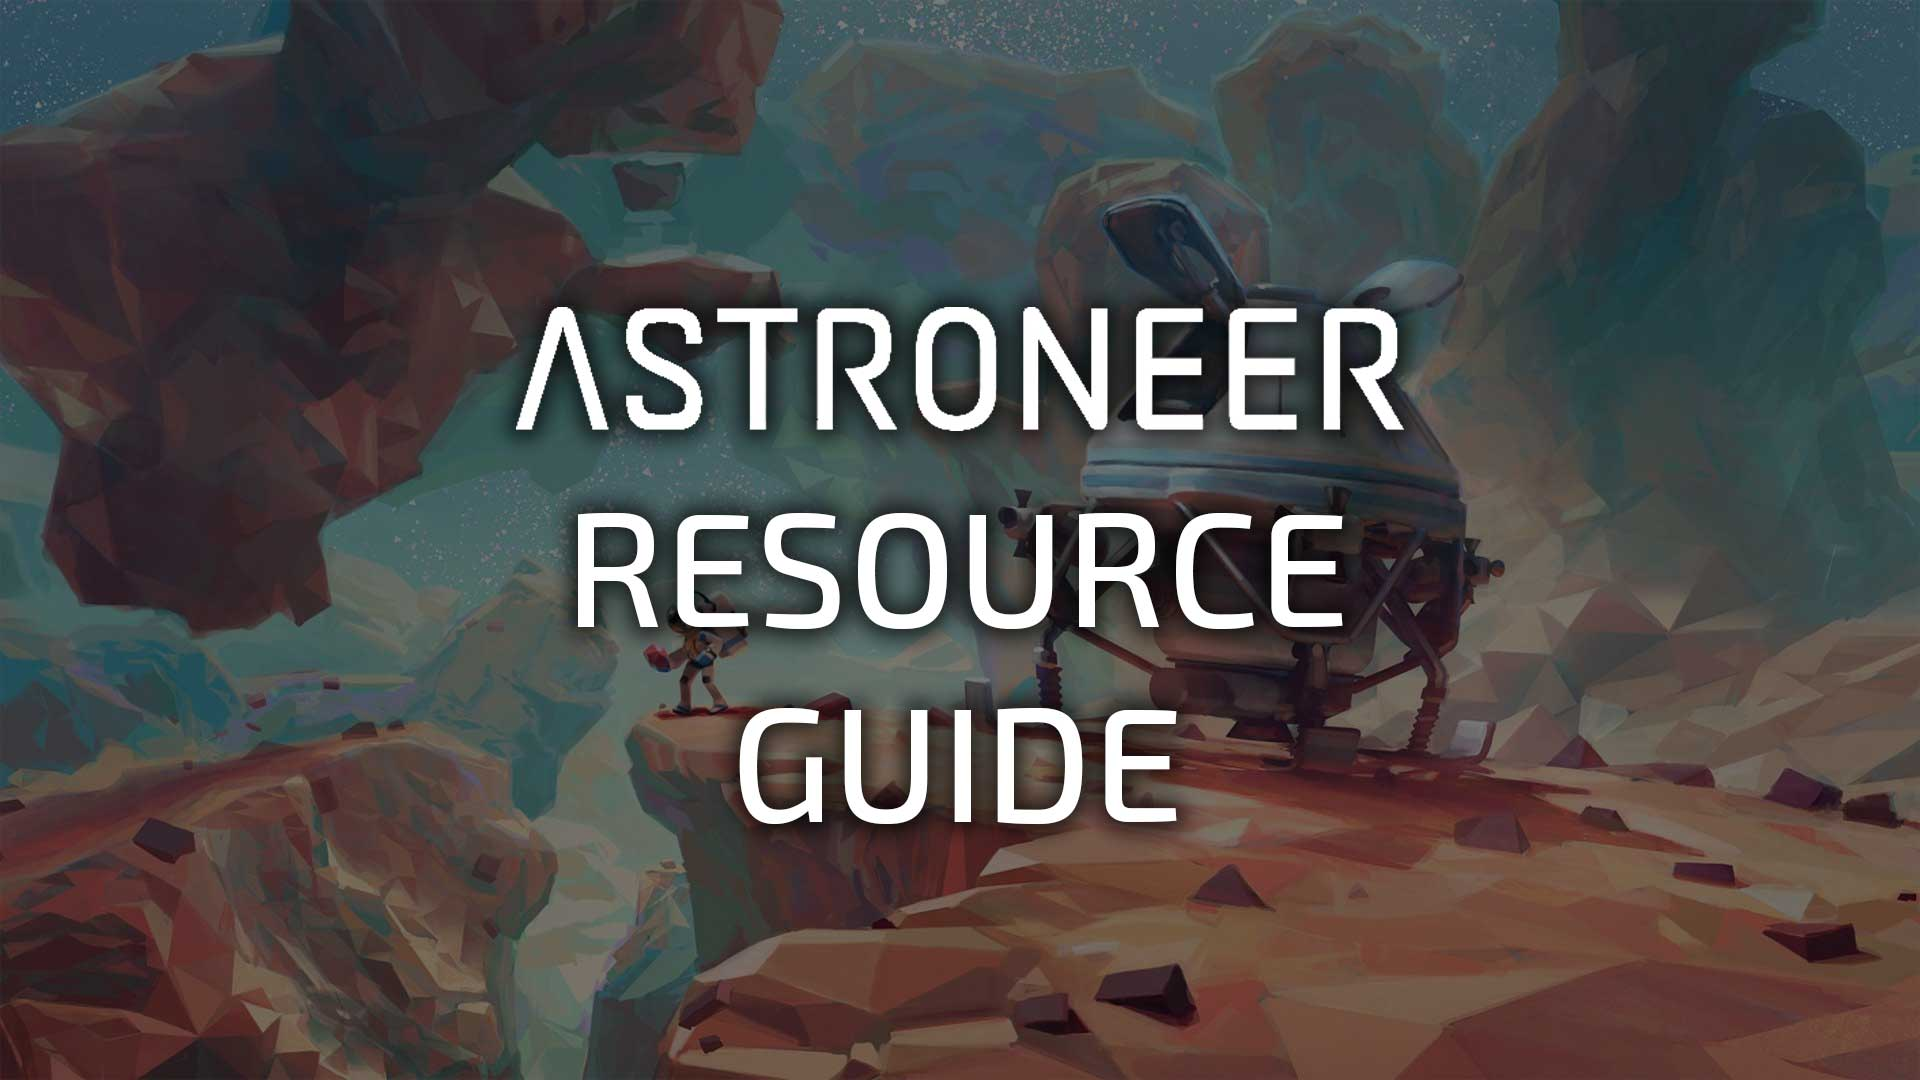 Astroneer Resource Guide Image